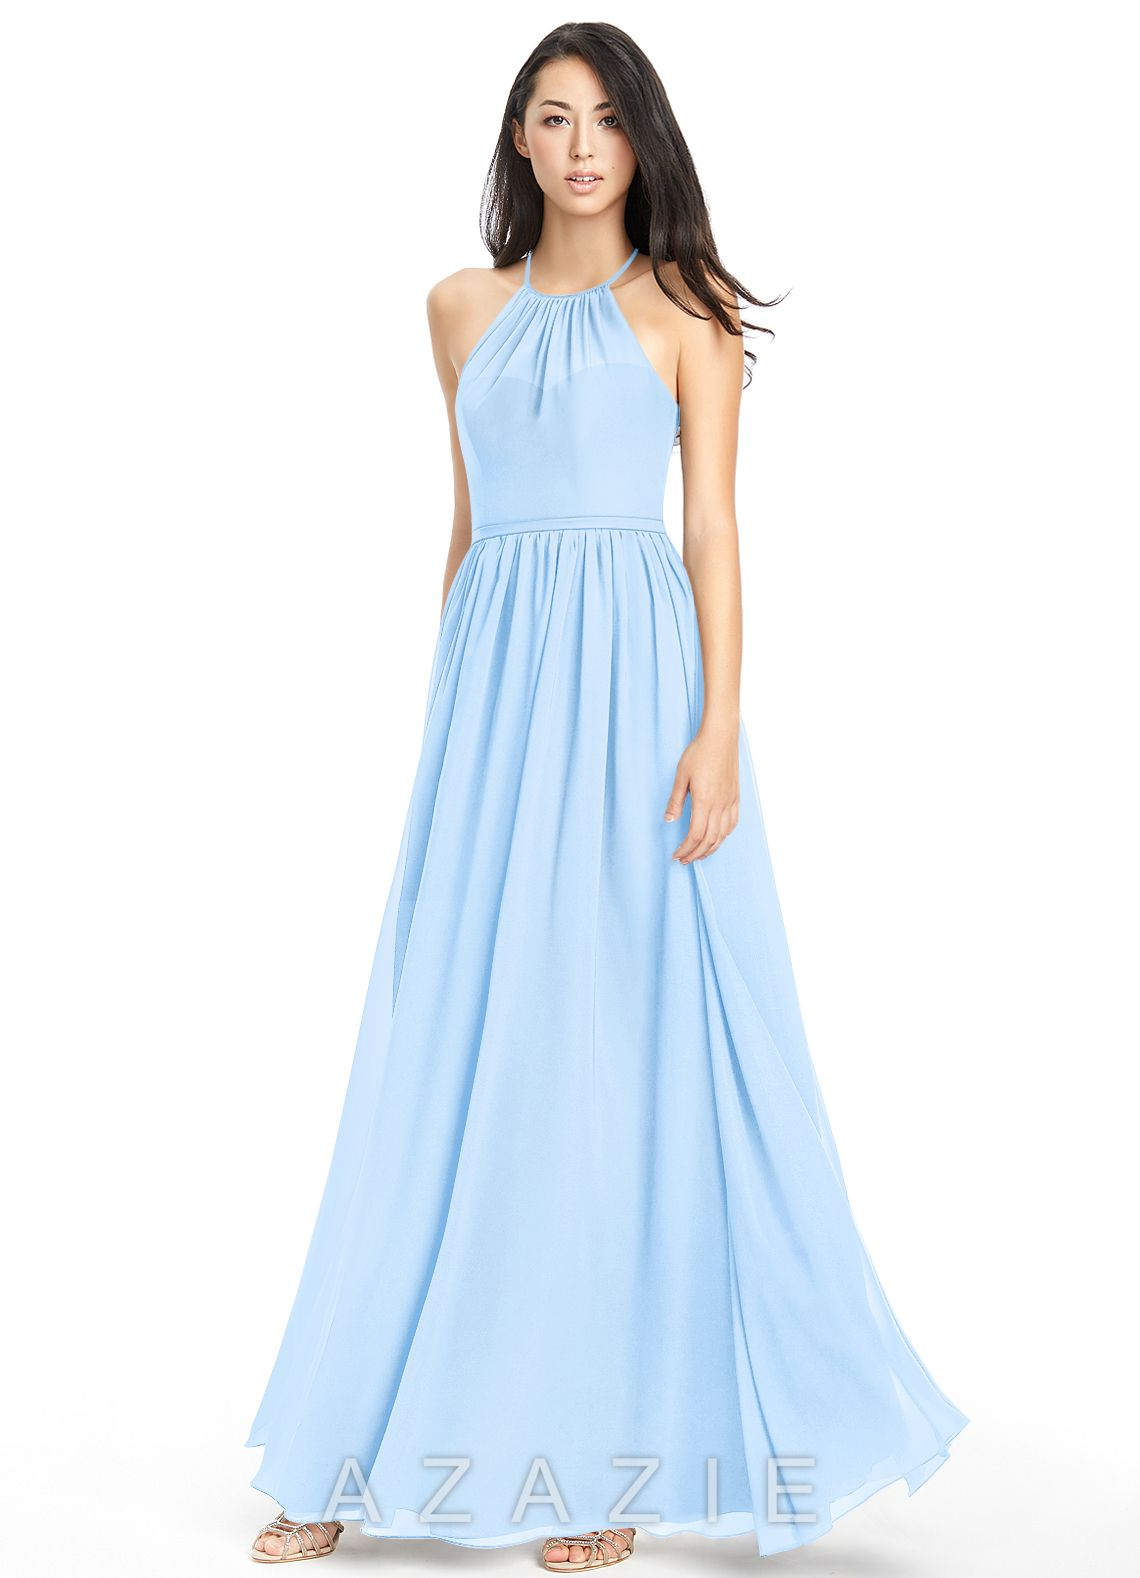 Kailyn bridesmaid dress favorite color and bridal parties